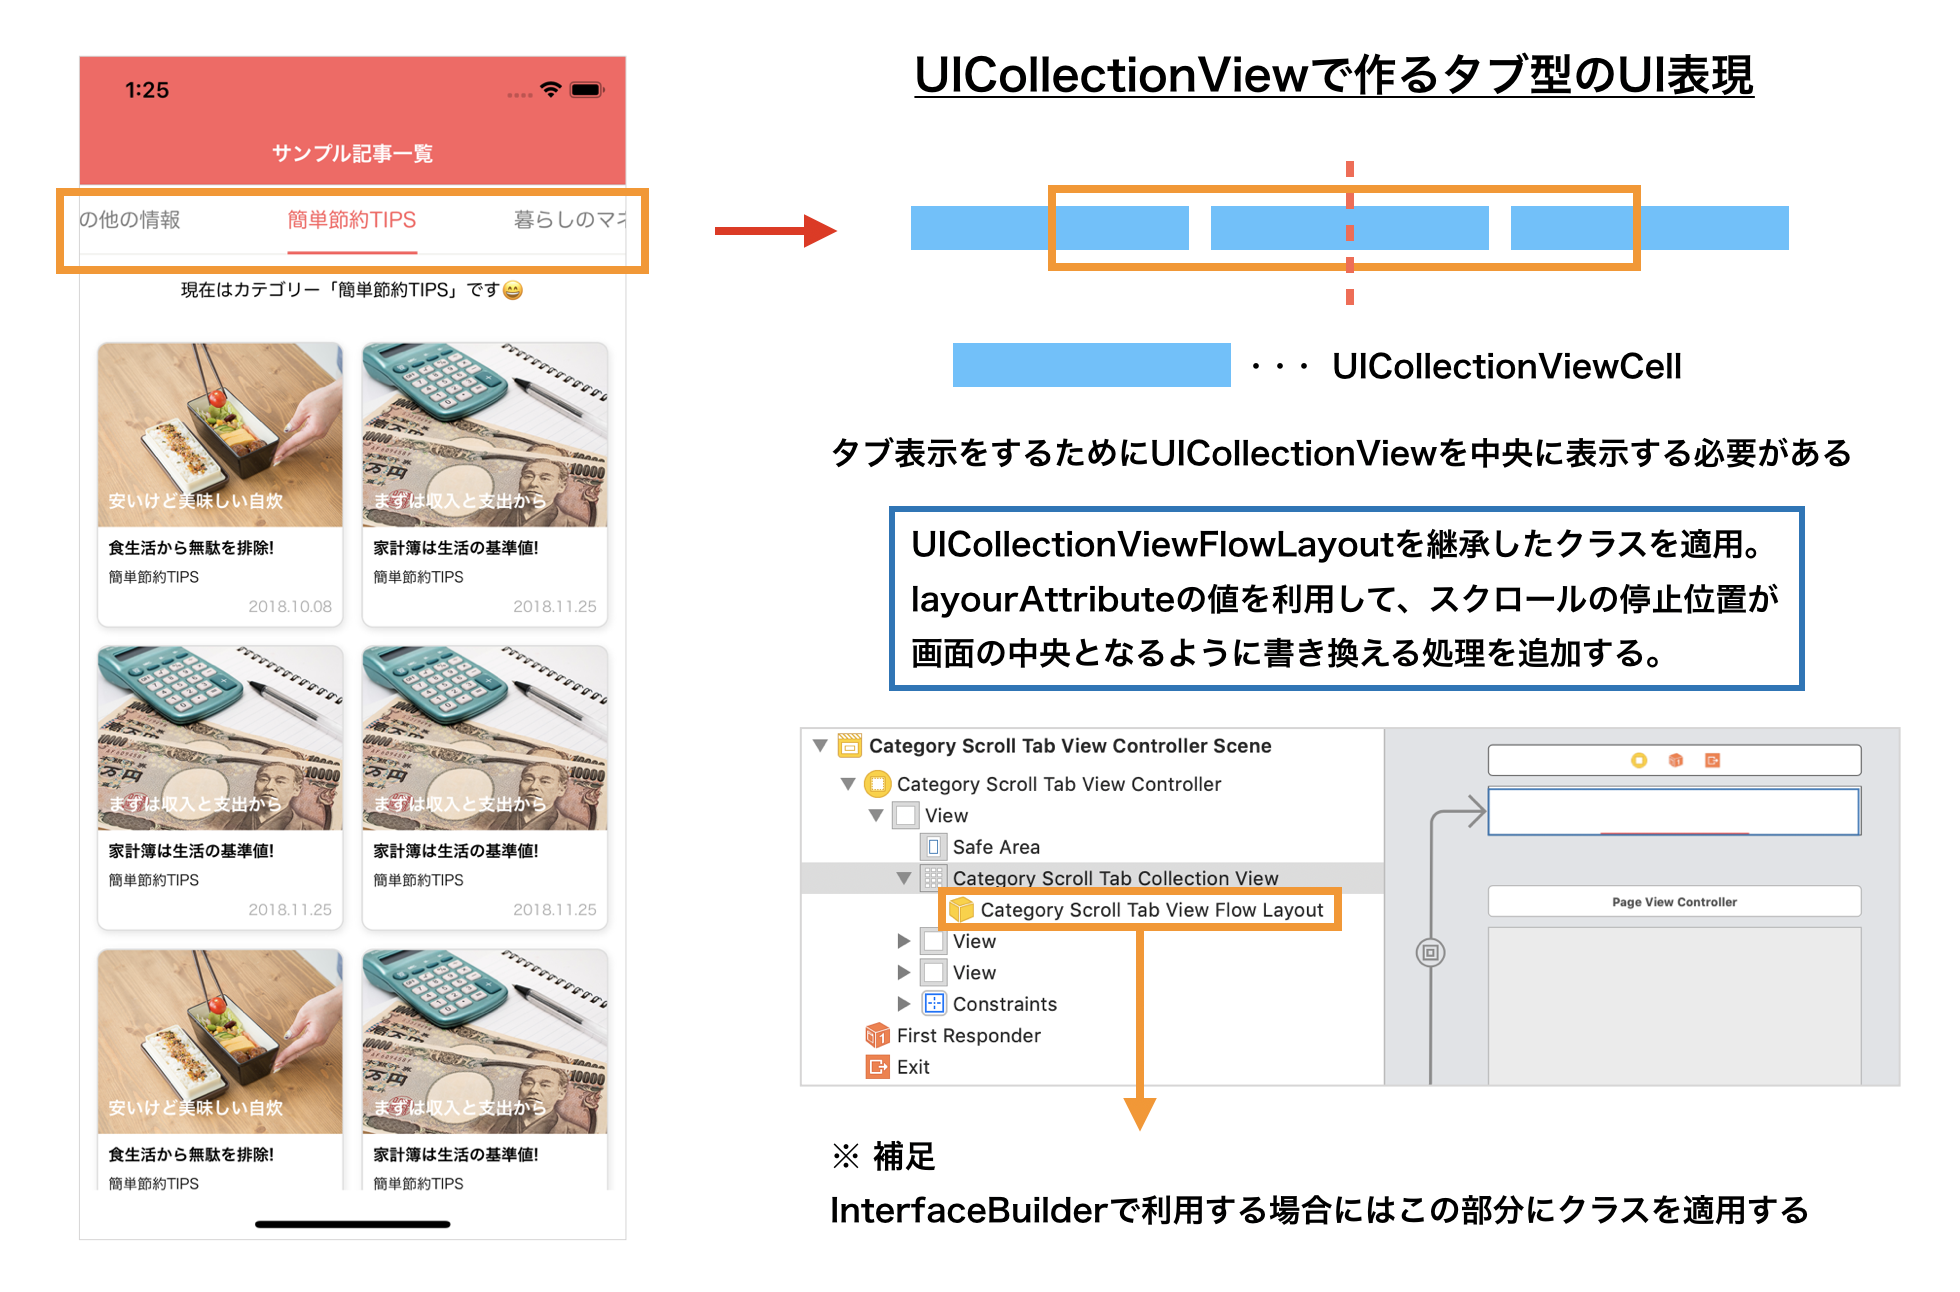 uicollectionview_layout_atrributes.png